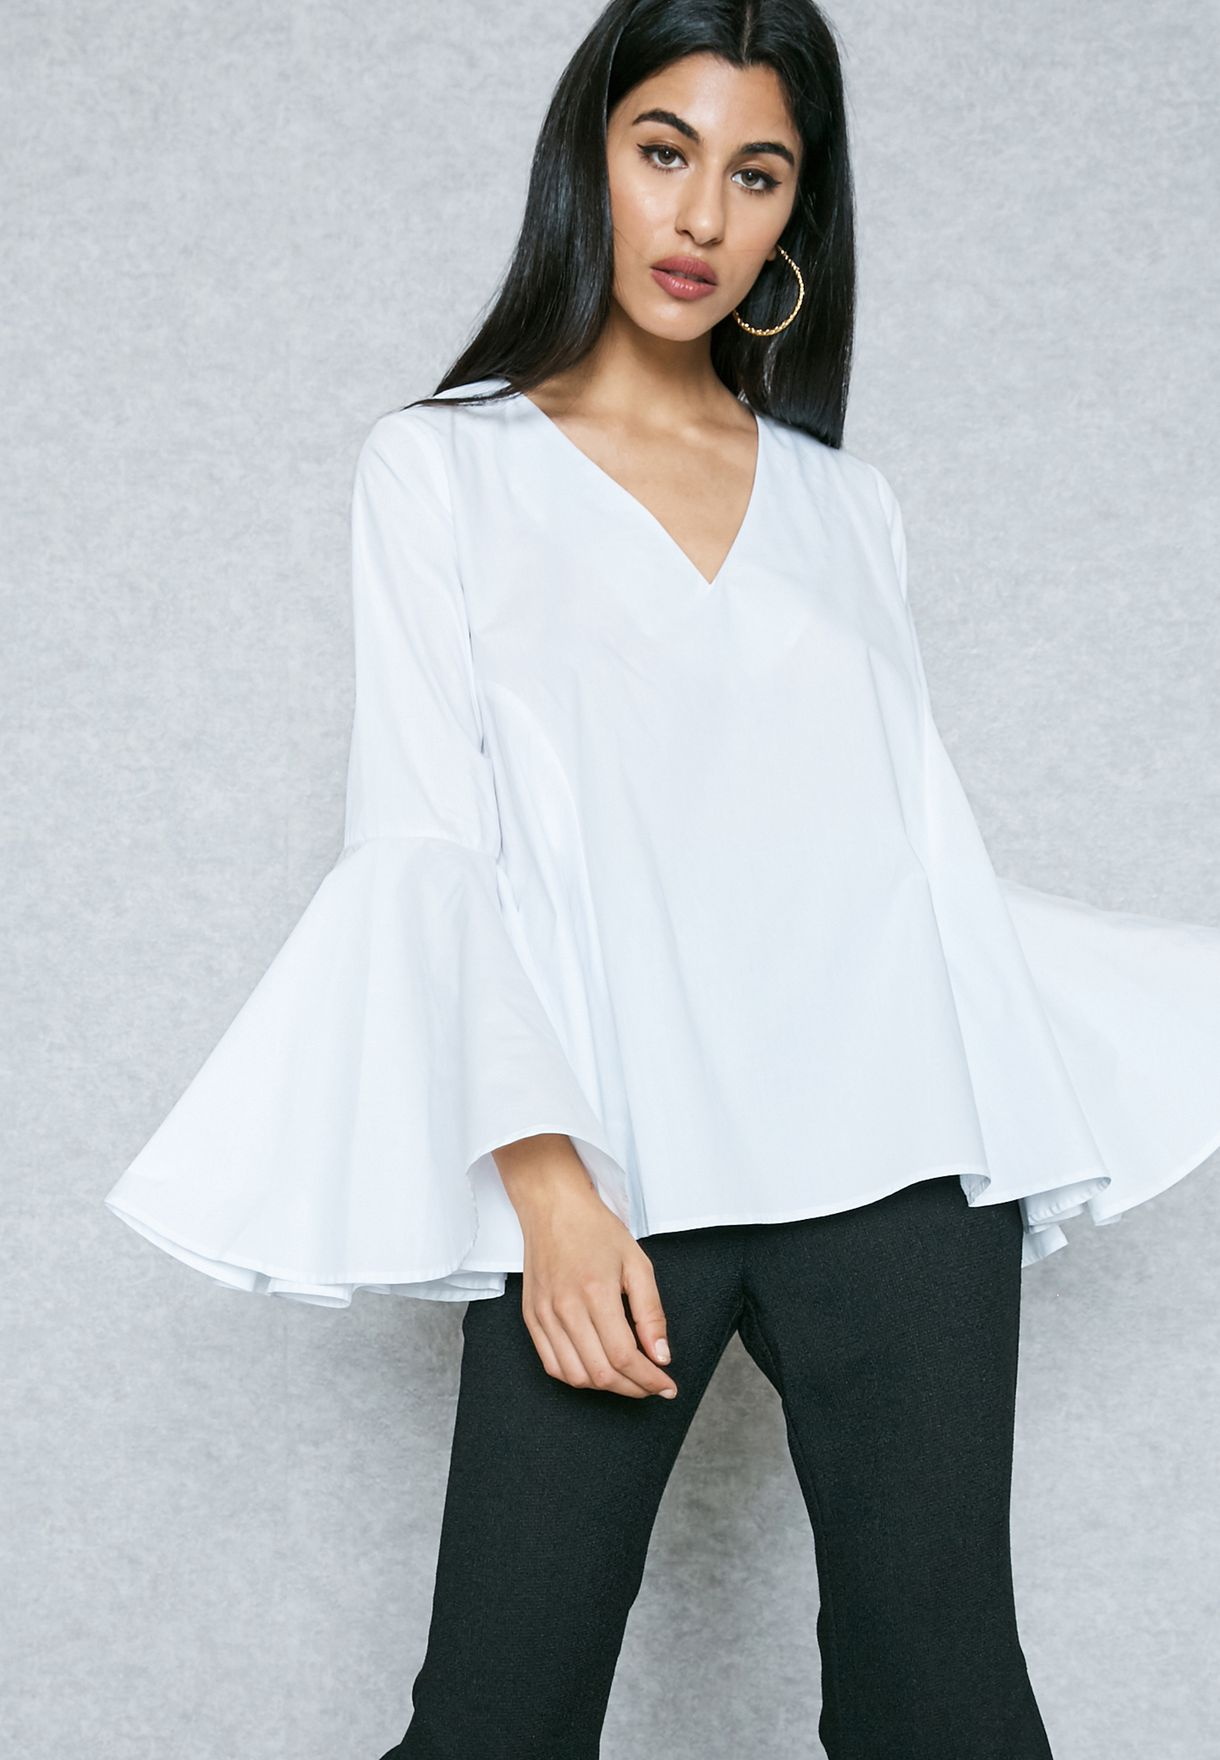 900ed8396a3b03 Shop Jovonna London white Flared Sleeve Pleated Top CATCH ME for ...